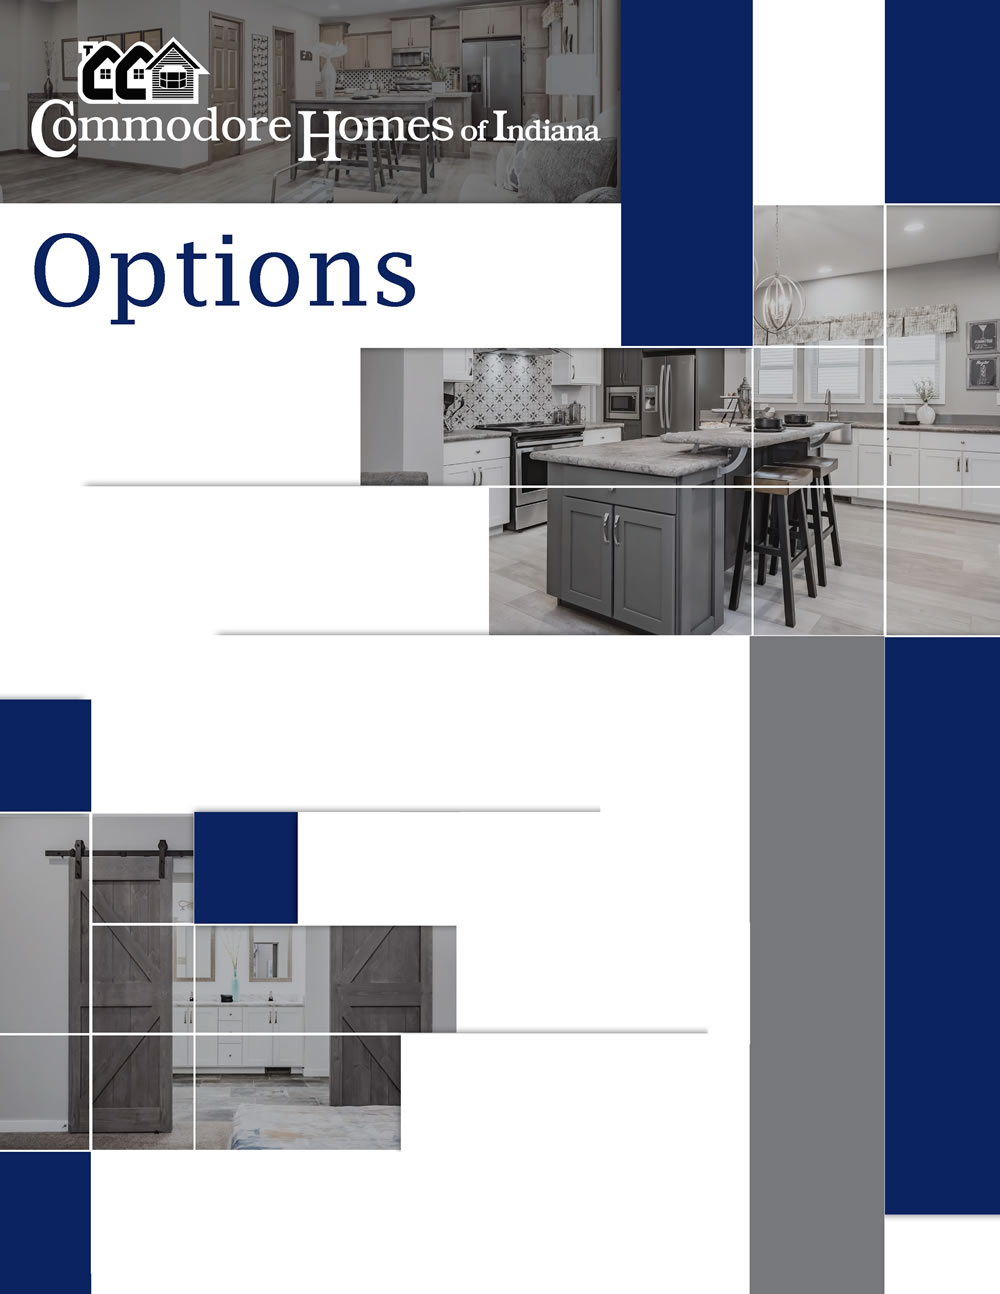 D&W Homes - Commodore-Options Cover